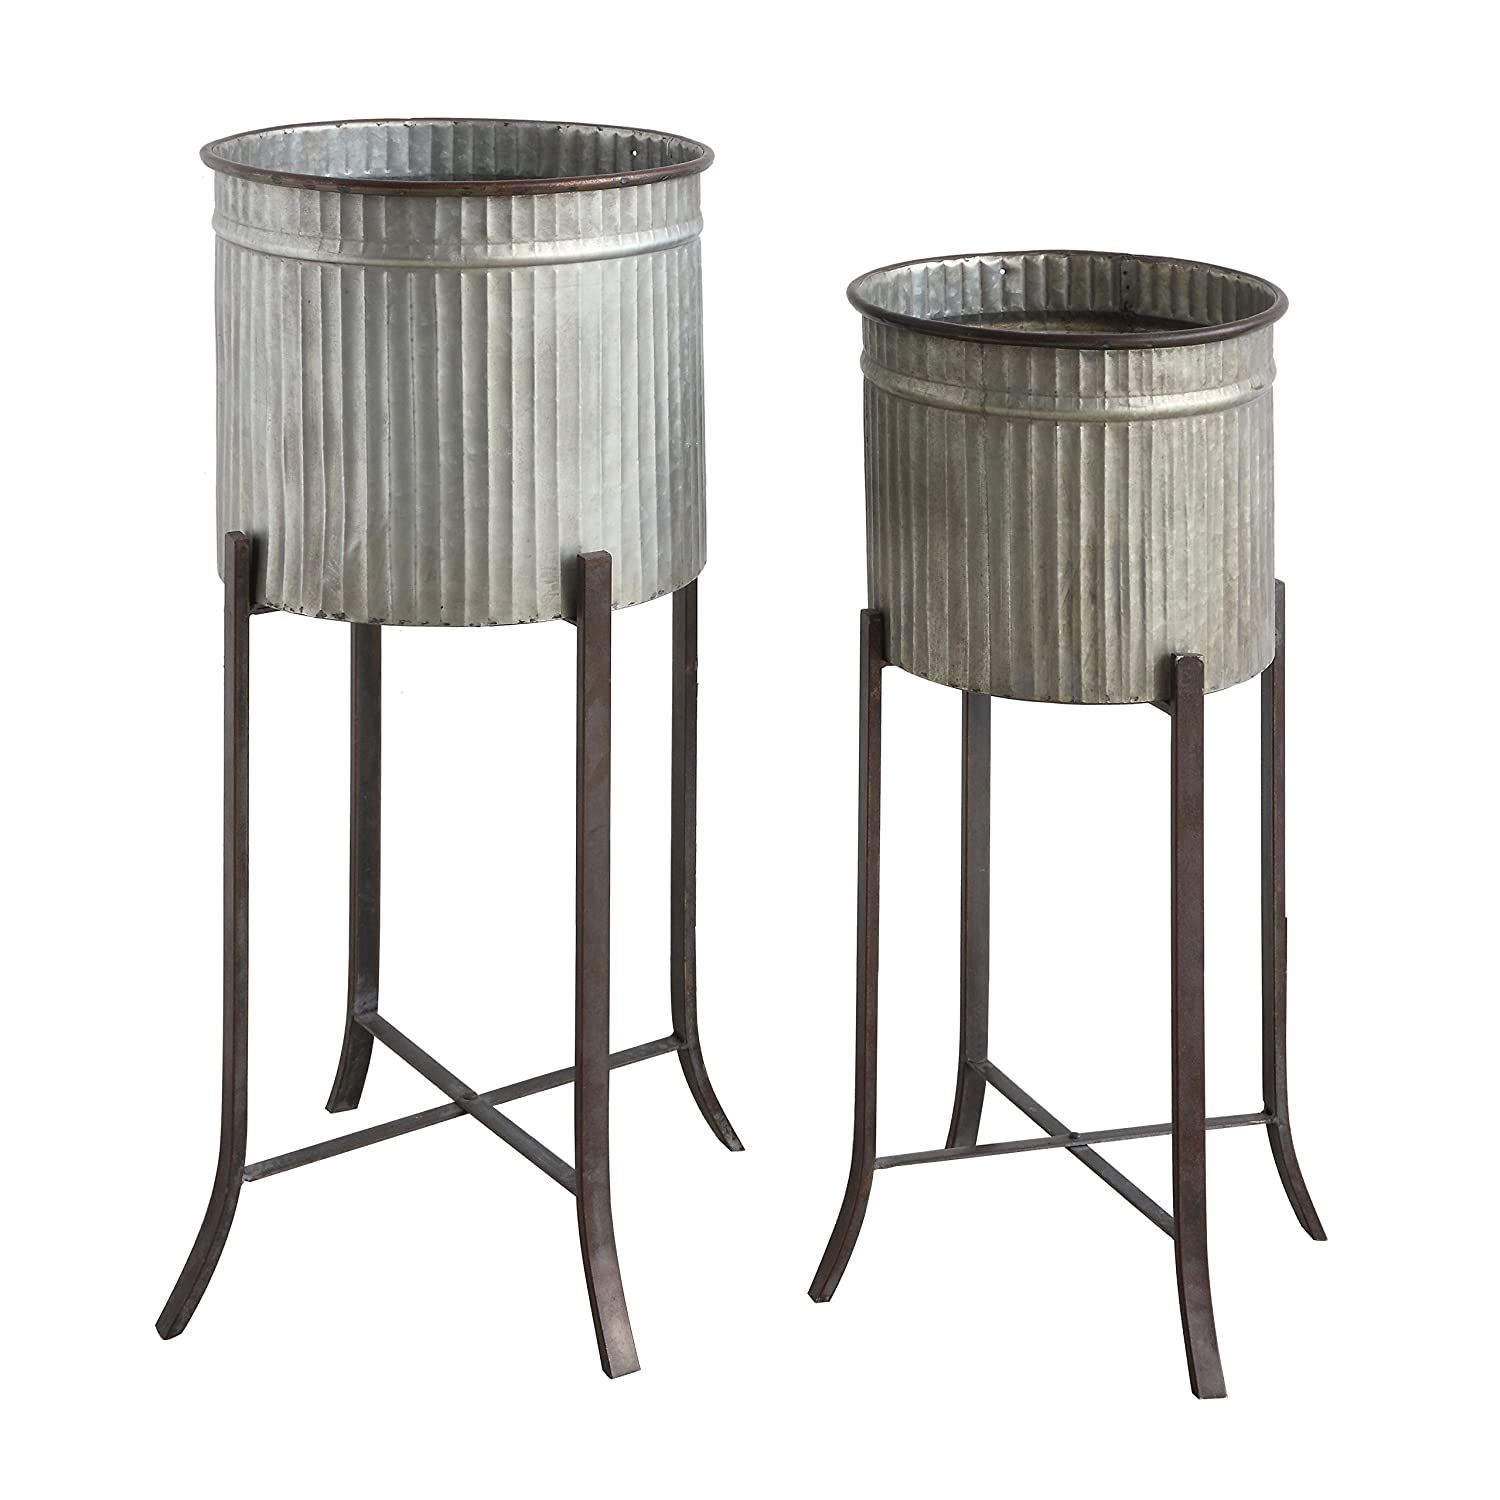 Rustic iron planters on stand for French farmhouse, European country, and French inspired interior decorating.